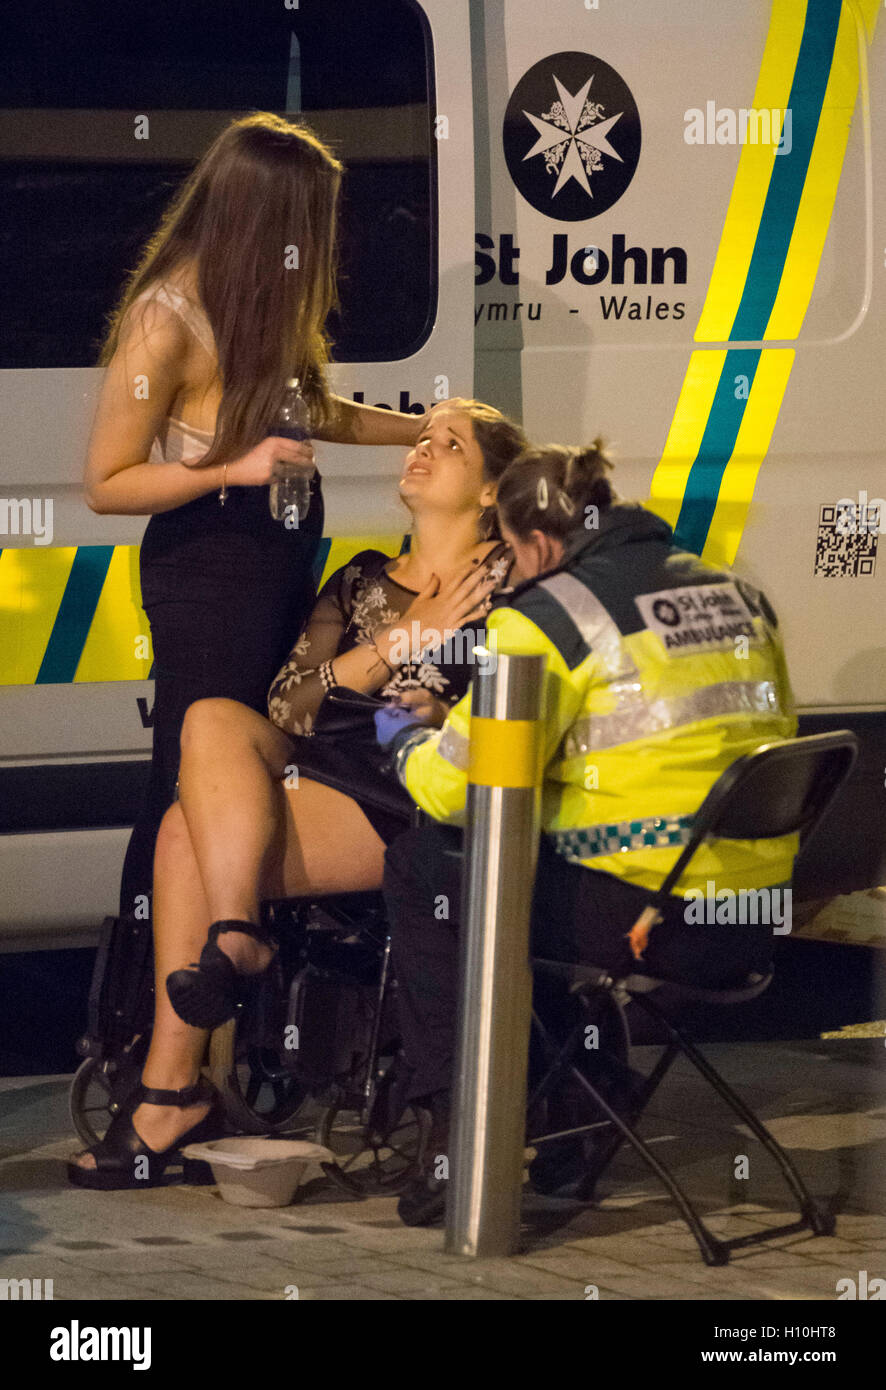 St. John Ambulance crew help a woman outside a nightclub during Freshers week in Cardiff, South Wales. - Stock Image